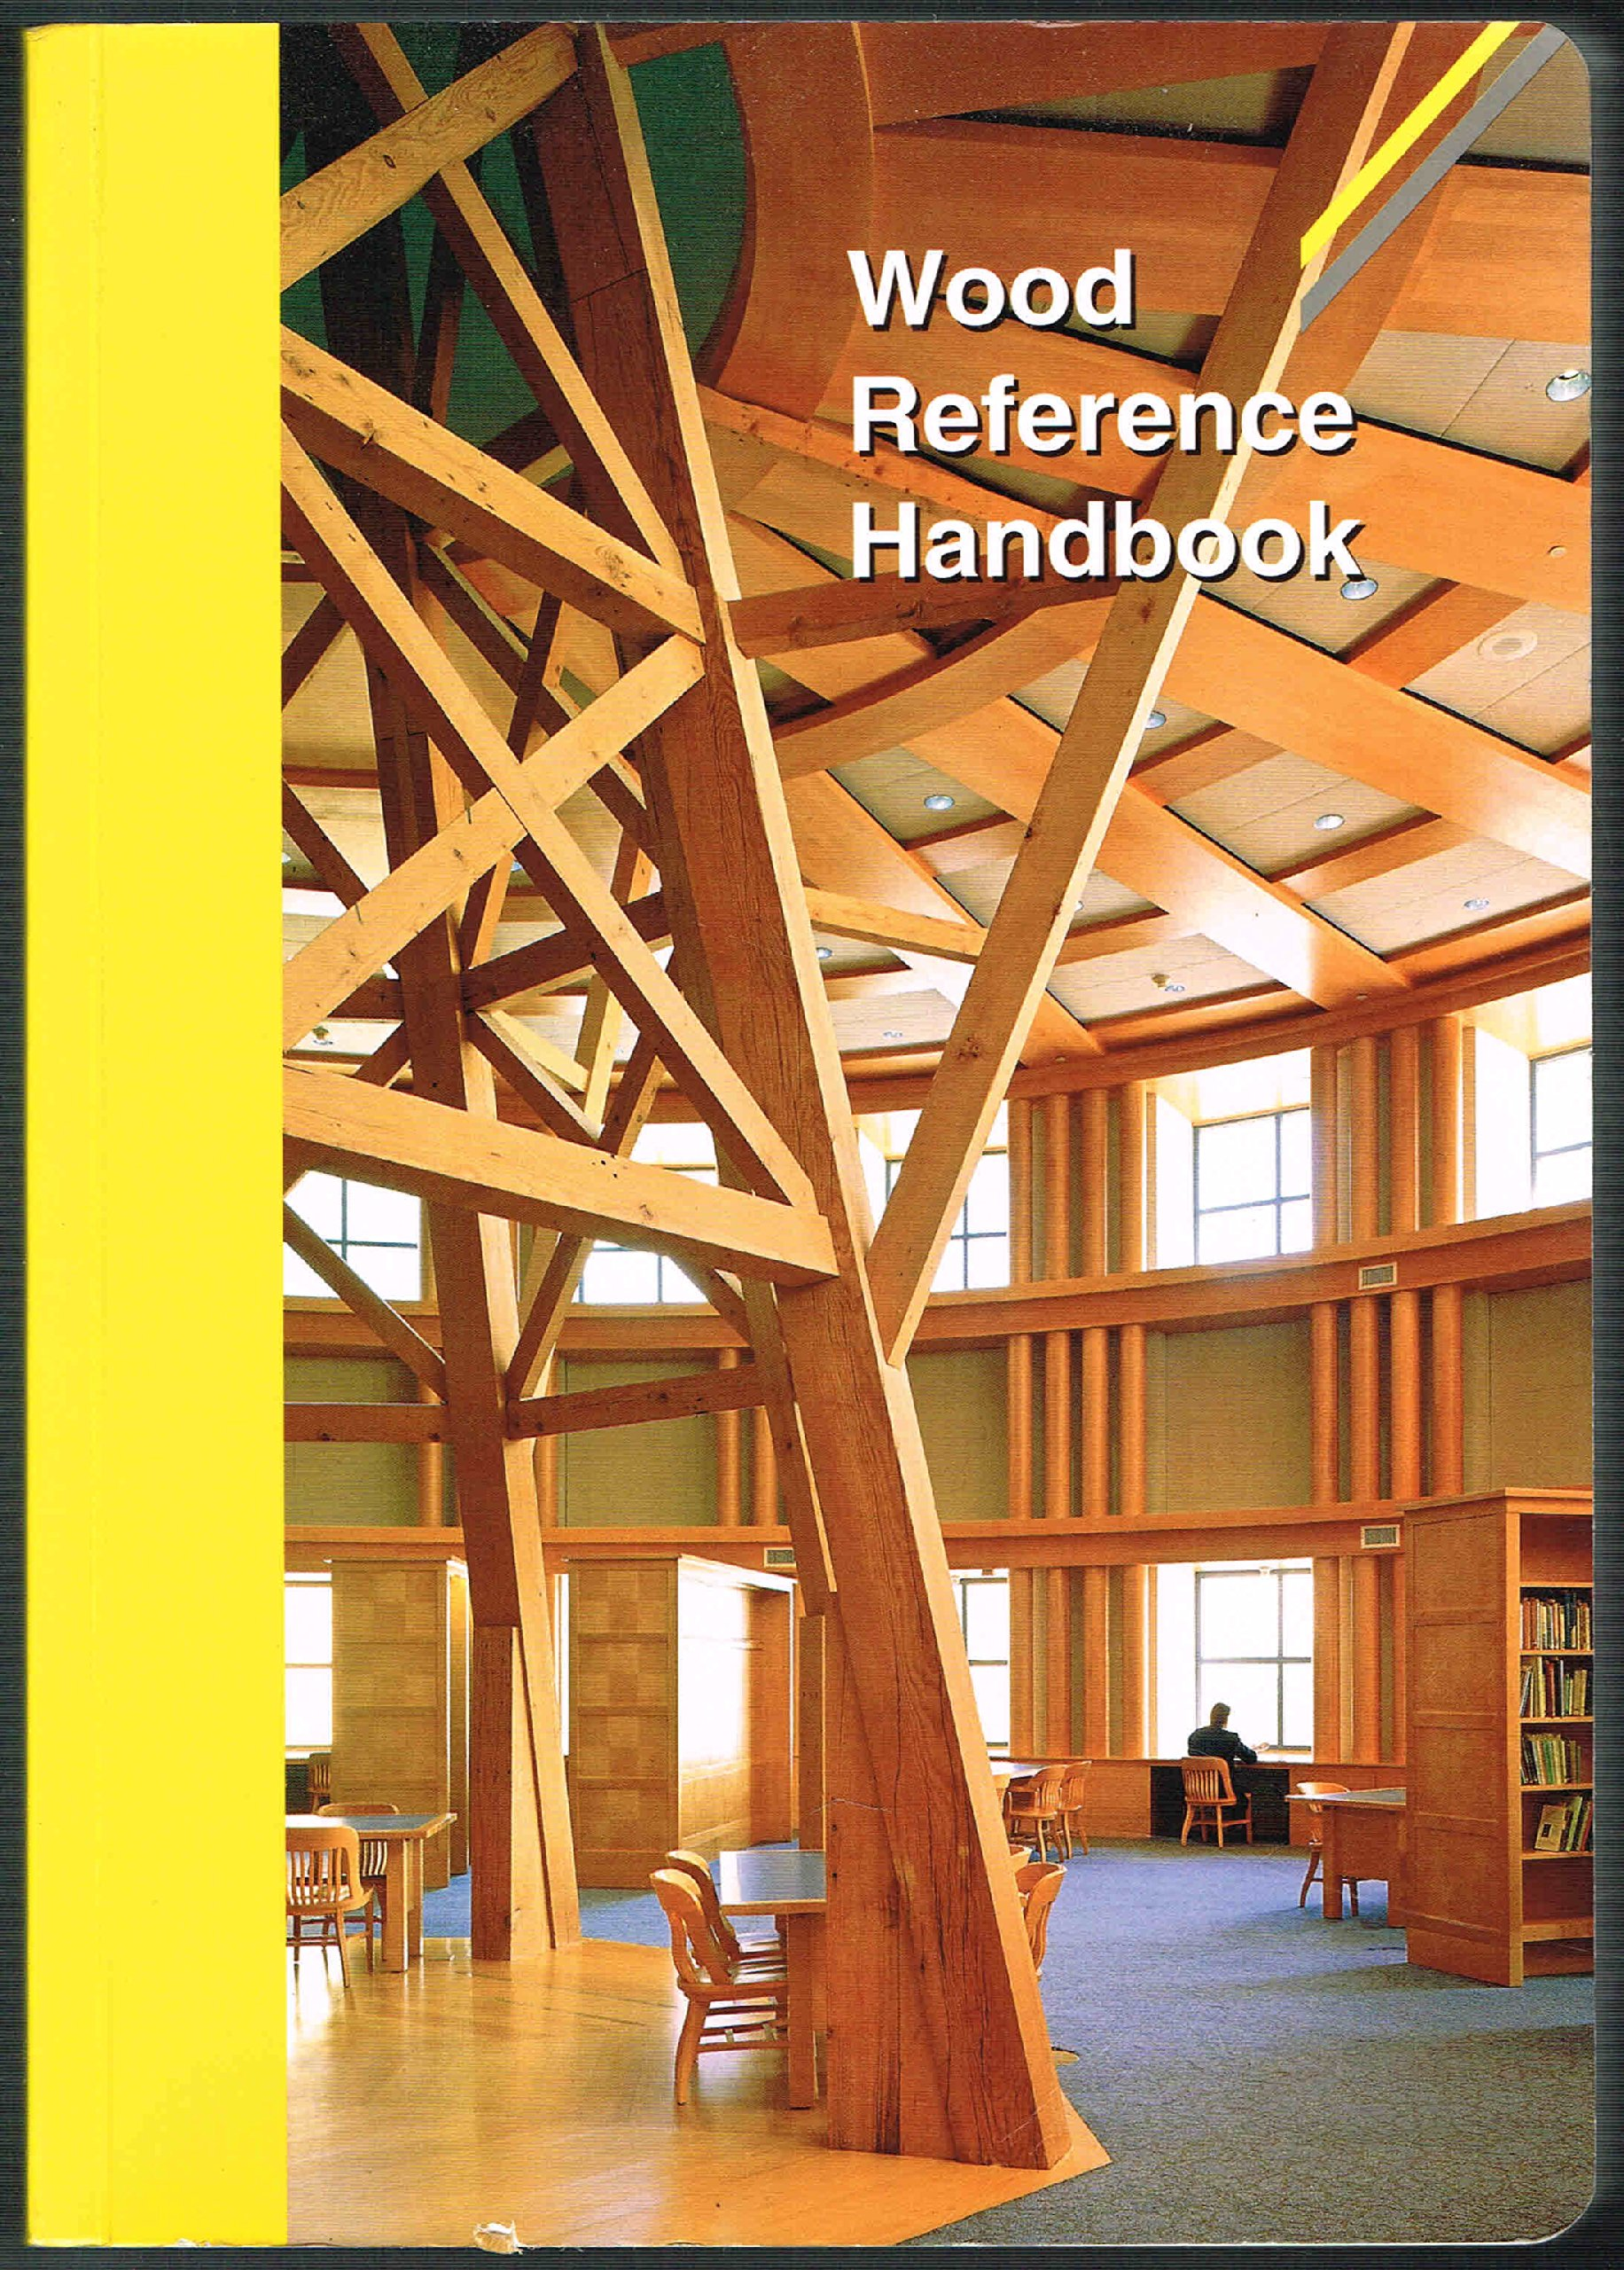 Wood Reference Handbook A Guide To The Architectural Use Of Wood In Building Construction Canadian Wood Council Amazon Com Books